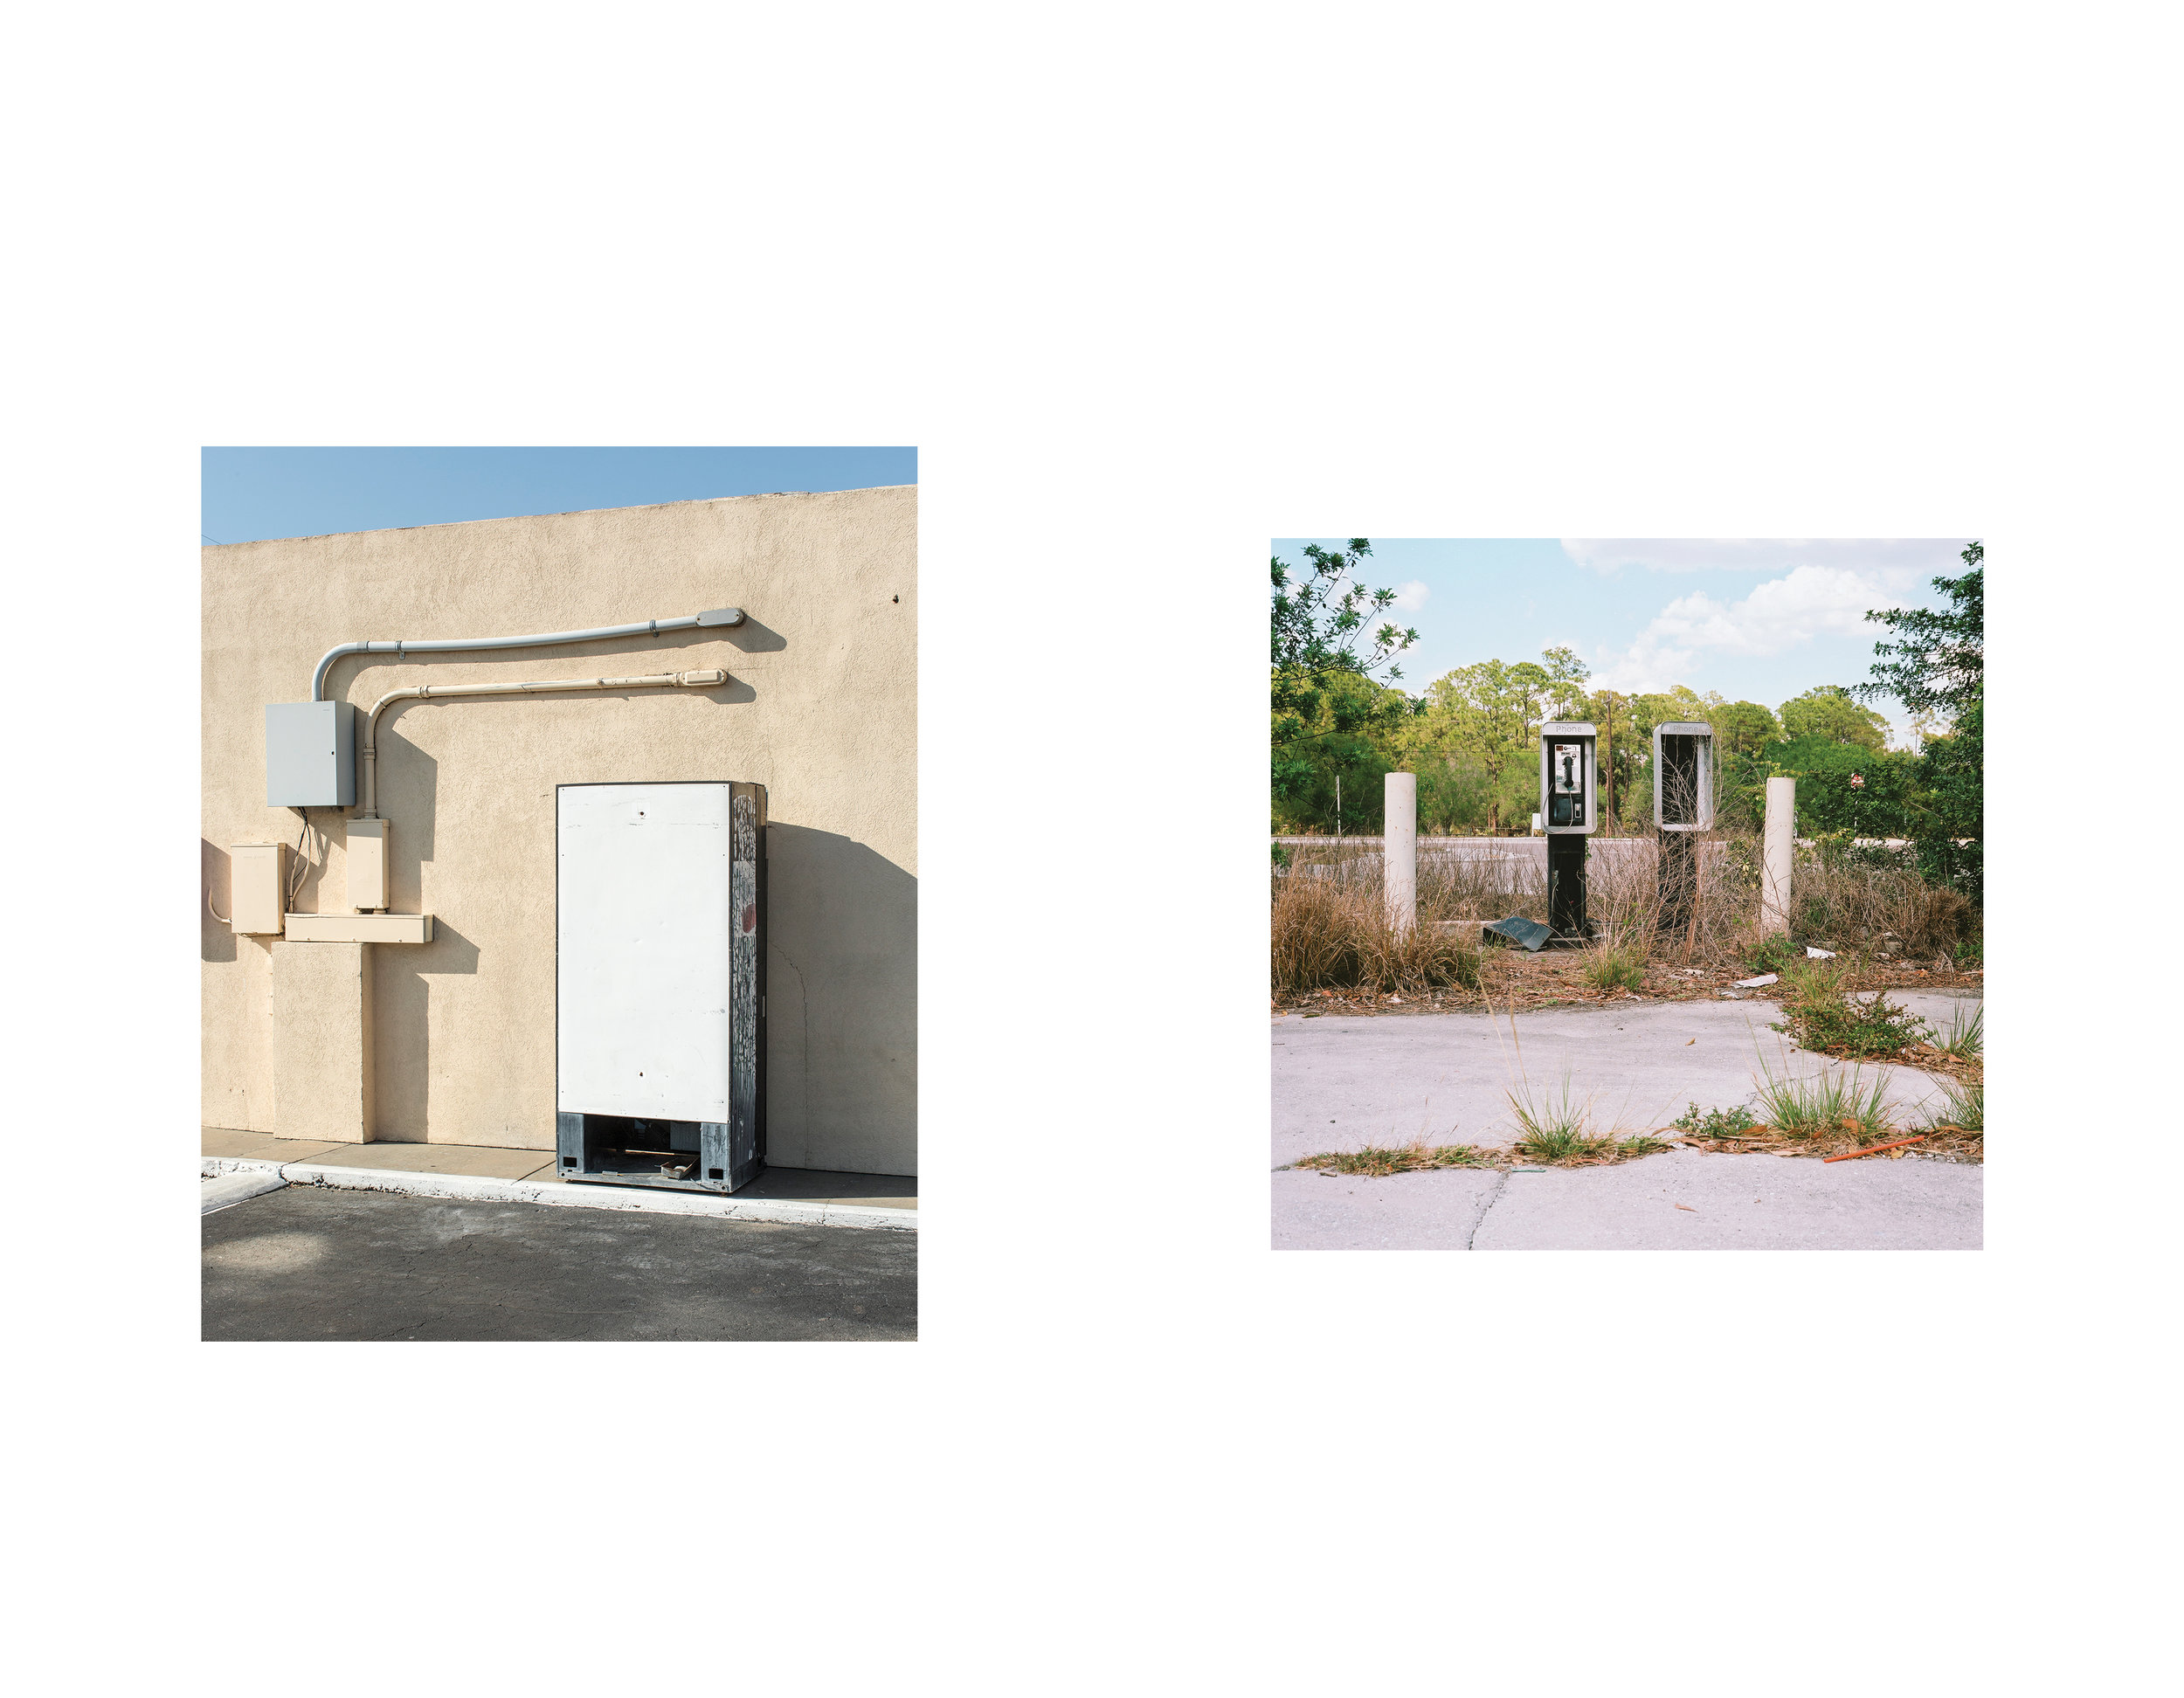 Left photo by Clayton Bruce Lyon, Right photo by Andrew Albright